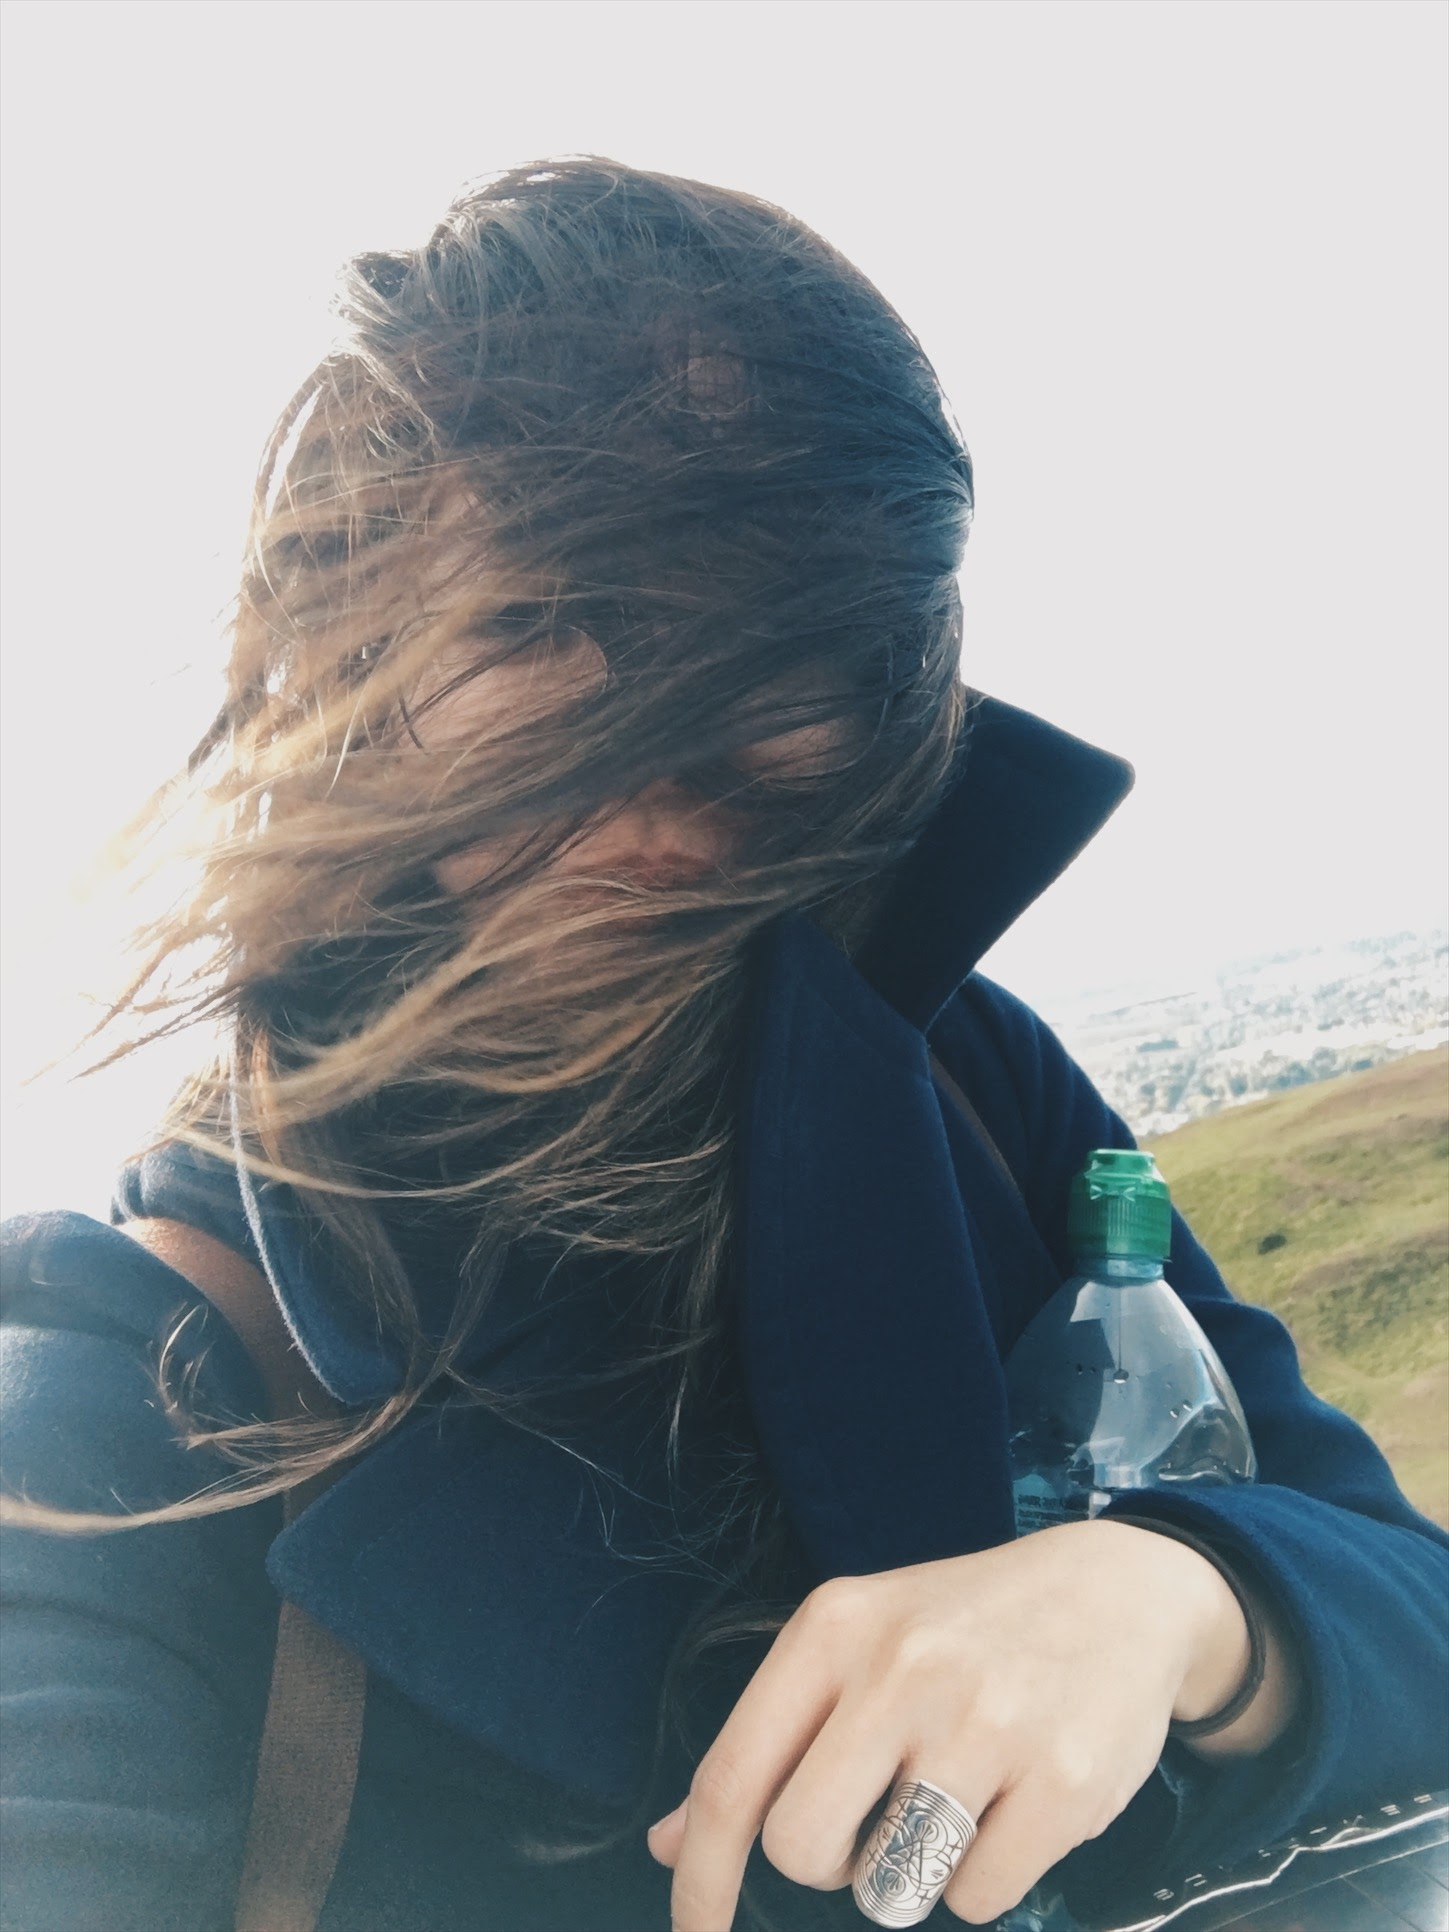 Went to Edinburgh - And all I got was this windy selfie taken at Arthur's Seat.